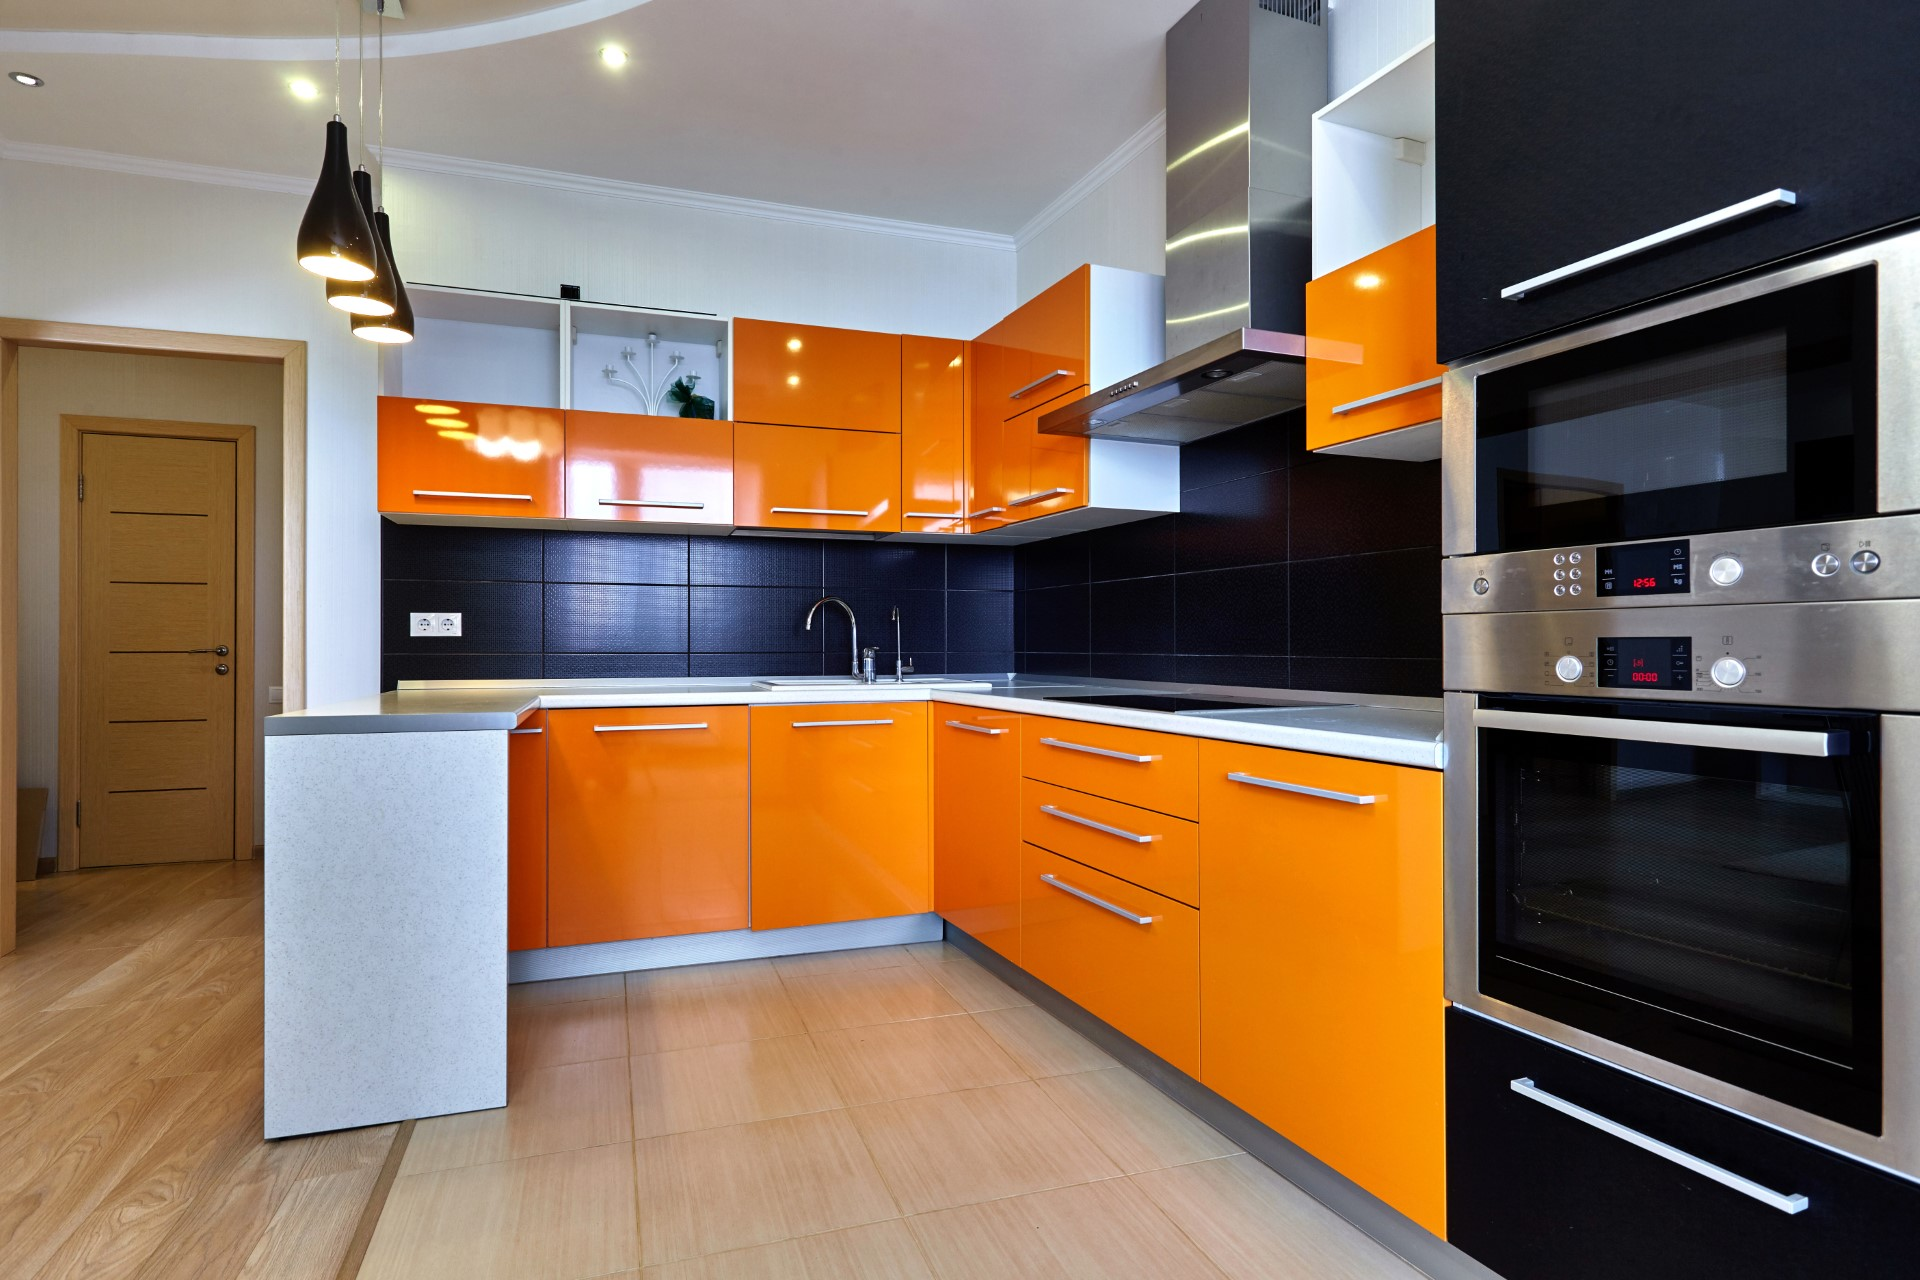 A bright orange kitchen is probably the thing you would least expect to see, but it's awesome! It's for the type of person who has no boundaries, and want something to become a centerpiece for their home. Definitely the type of abstract decoration I would bring to my home.